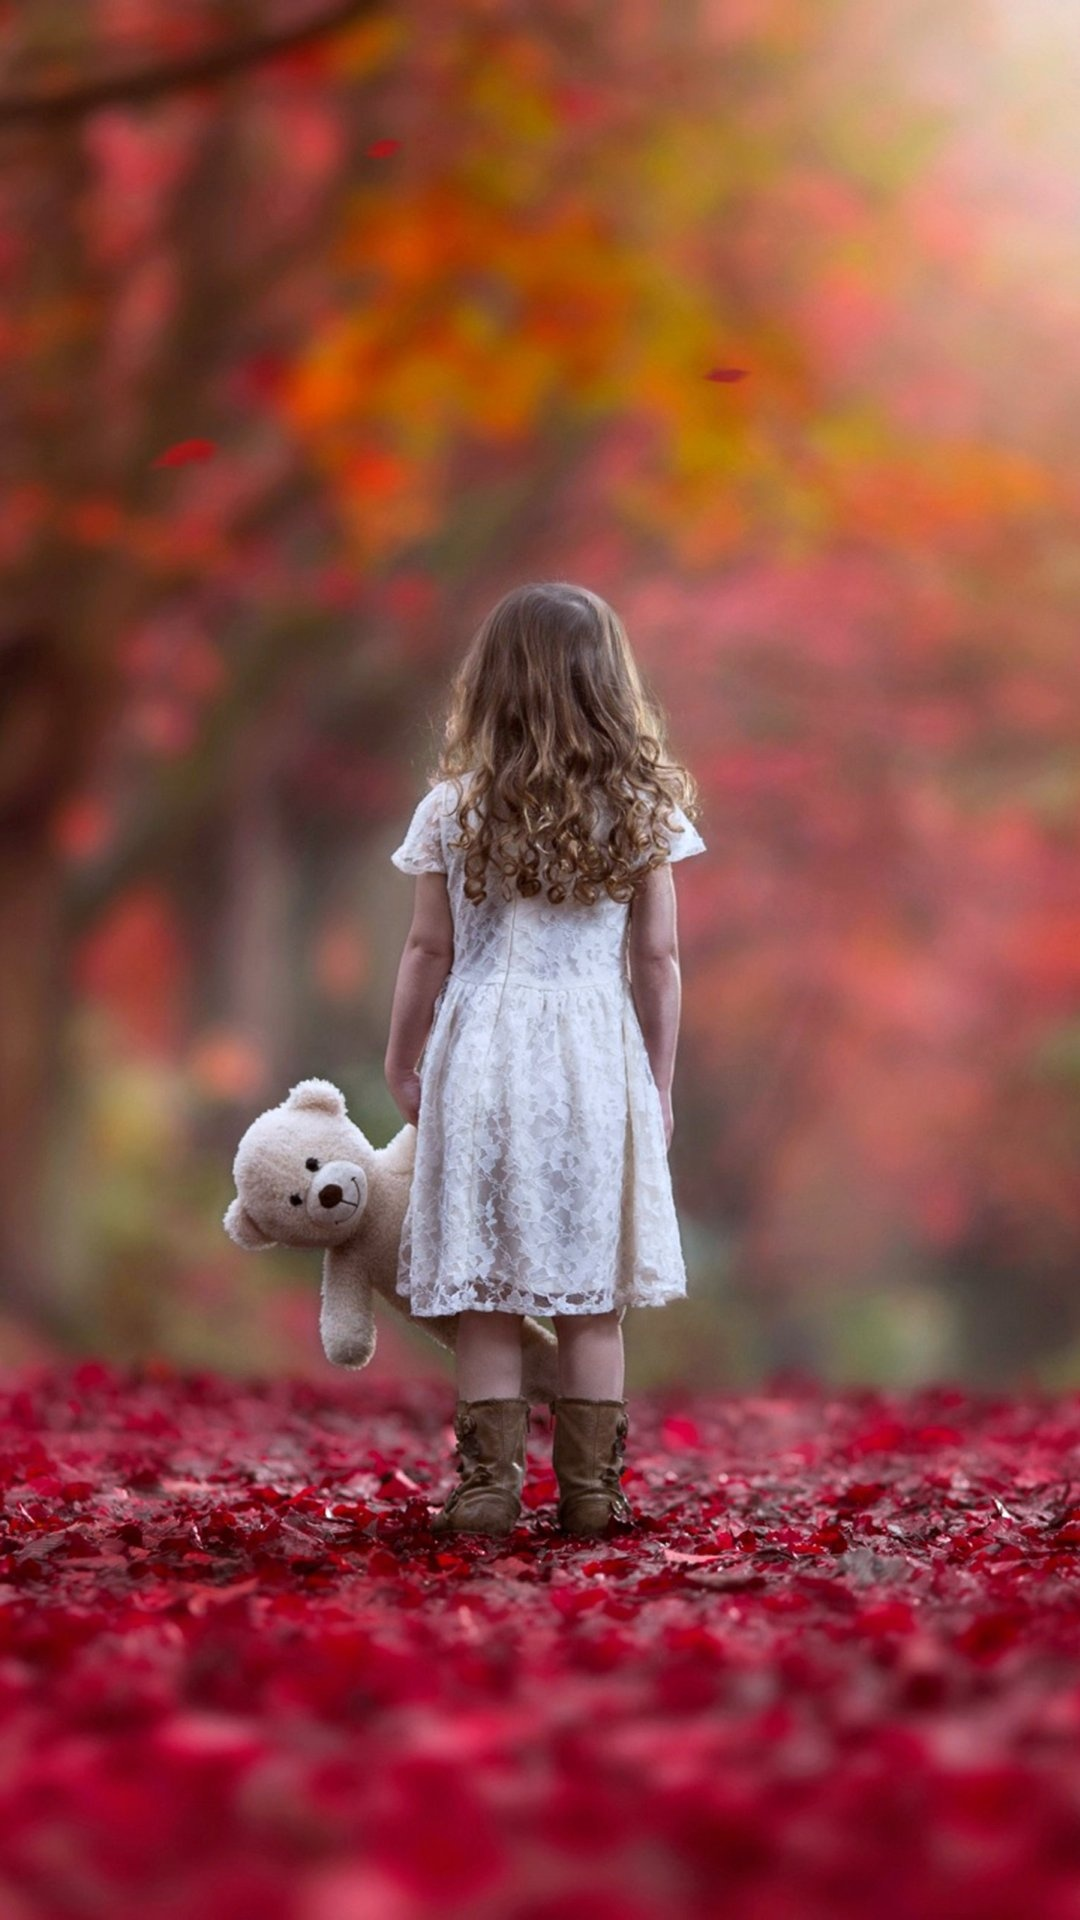 autumn sad lonely little girl wallpapers 1080x1920 328006